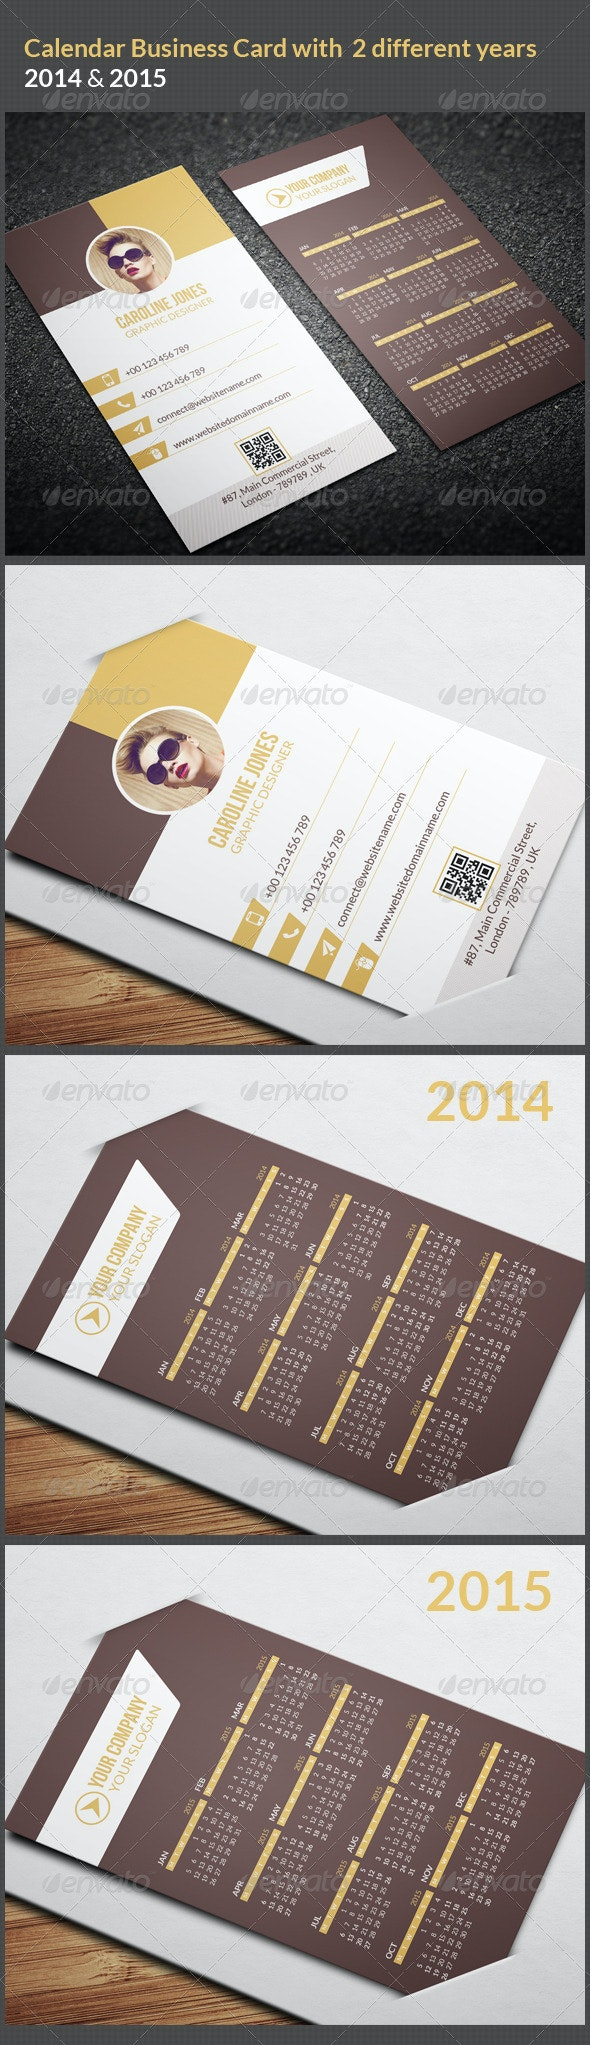 Calendar Business Card 2014 & 2015 - Business Cards Print Templates